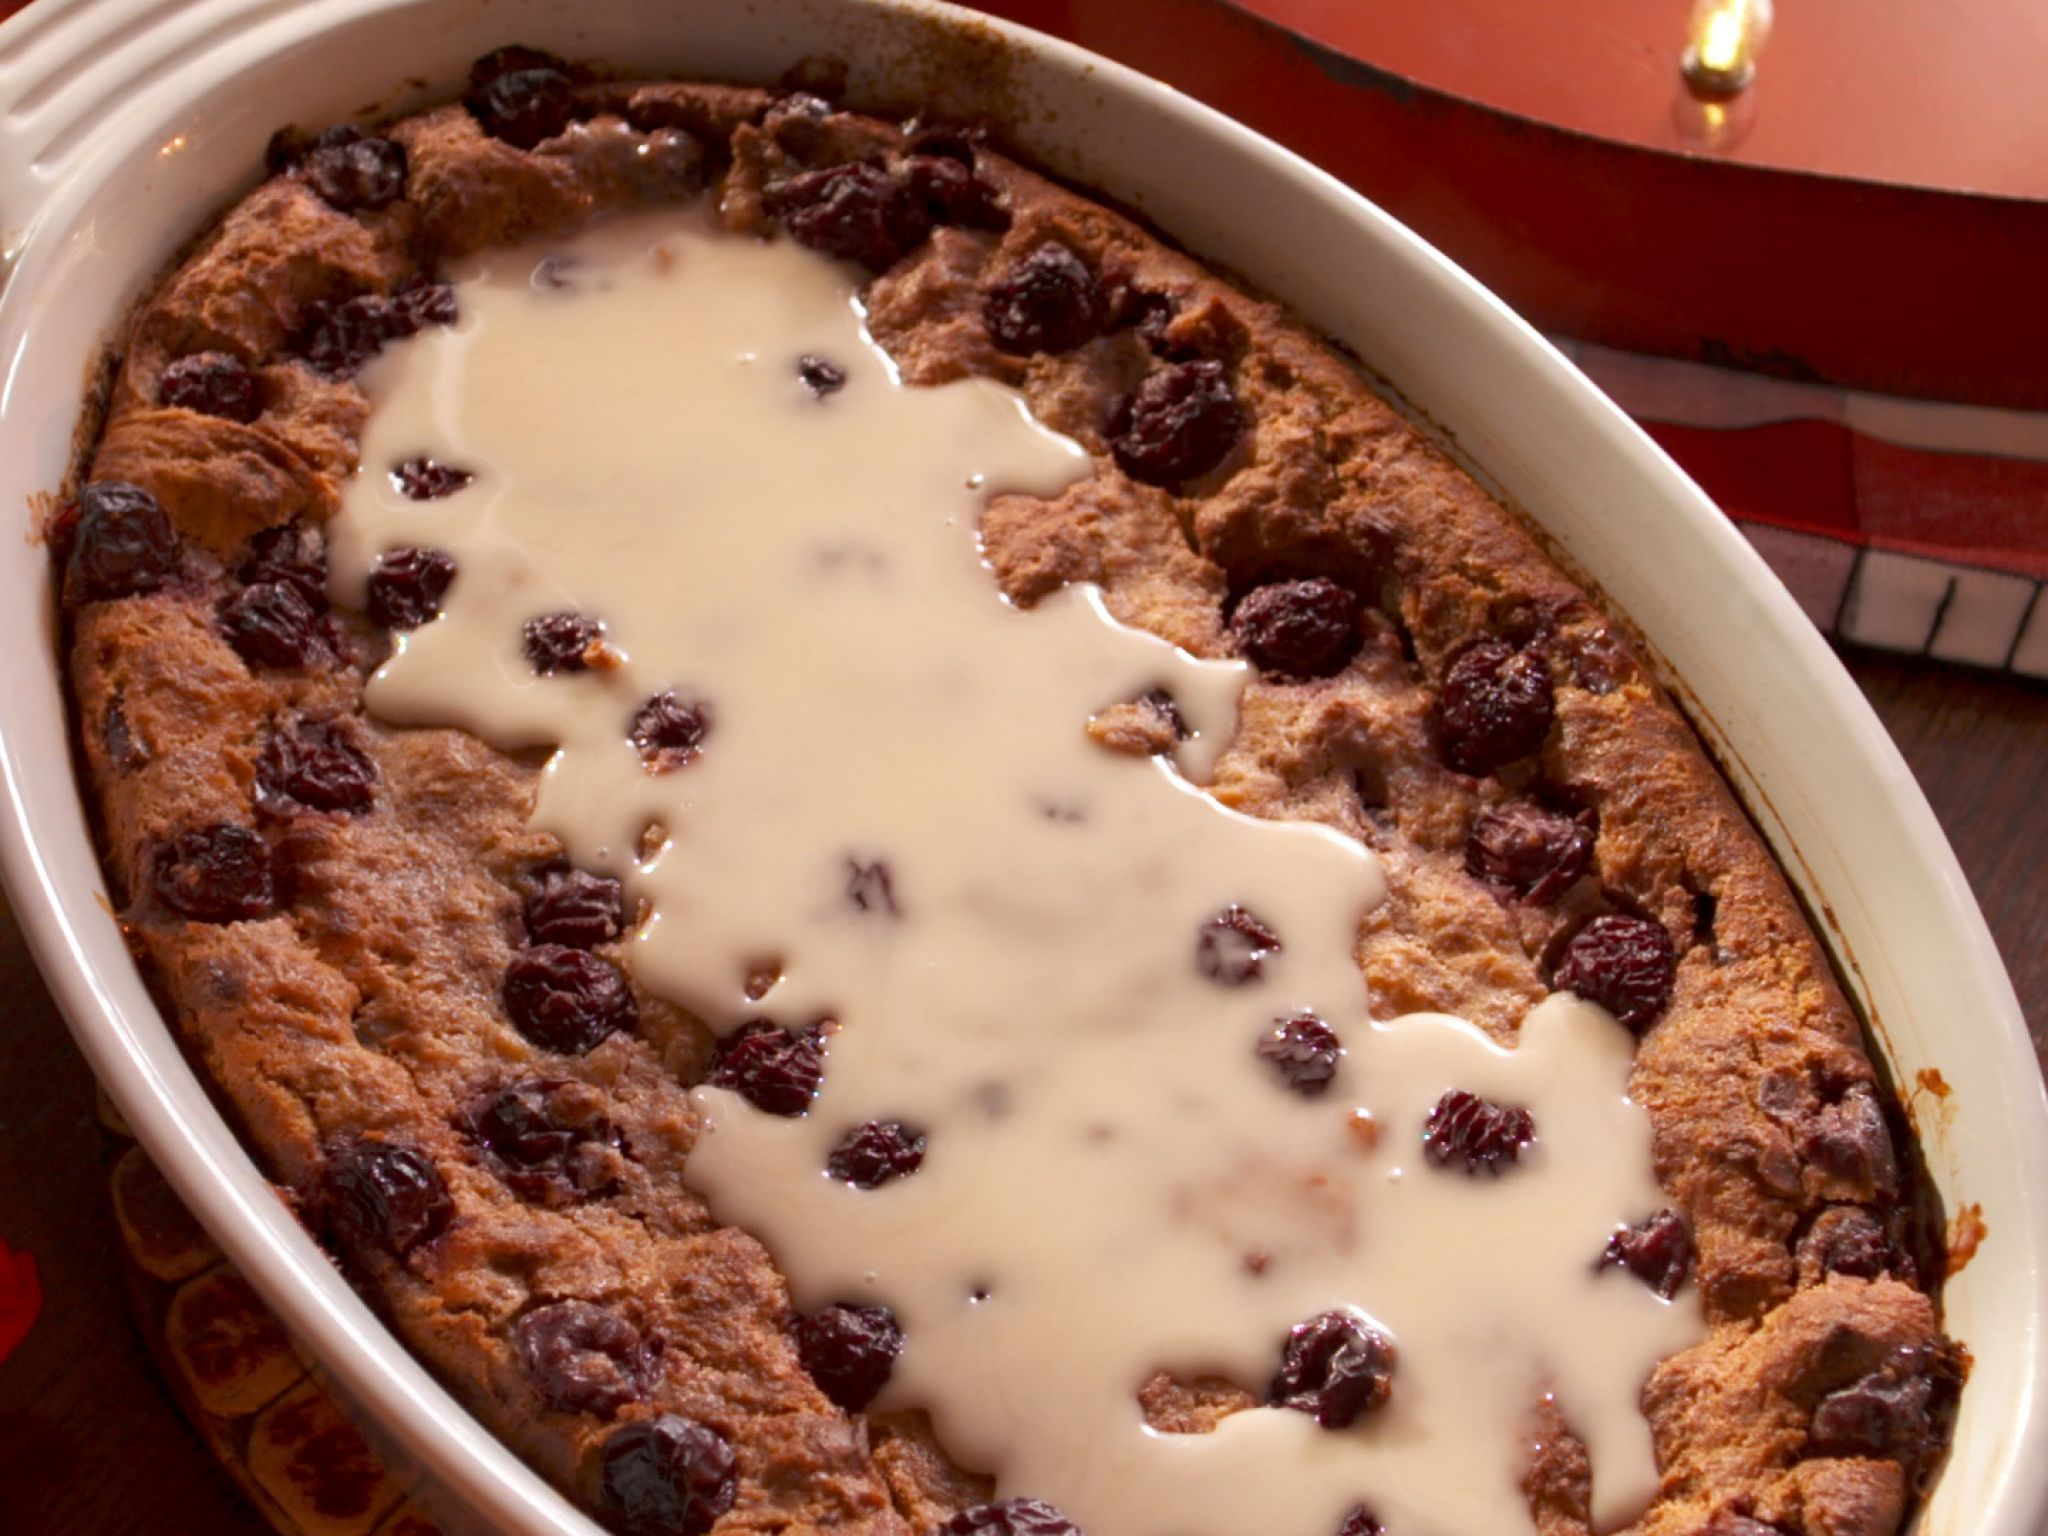 Farmhouse Rules Meatloaf Bourbon Soaked Cherry Bread Pudding With Vanilla Glaze